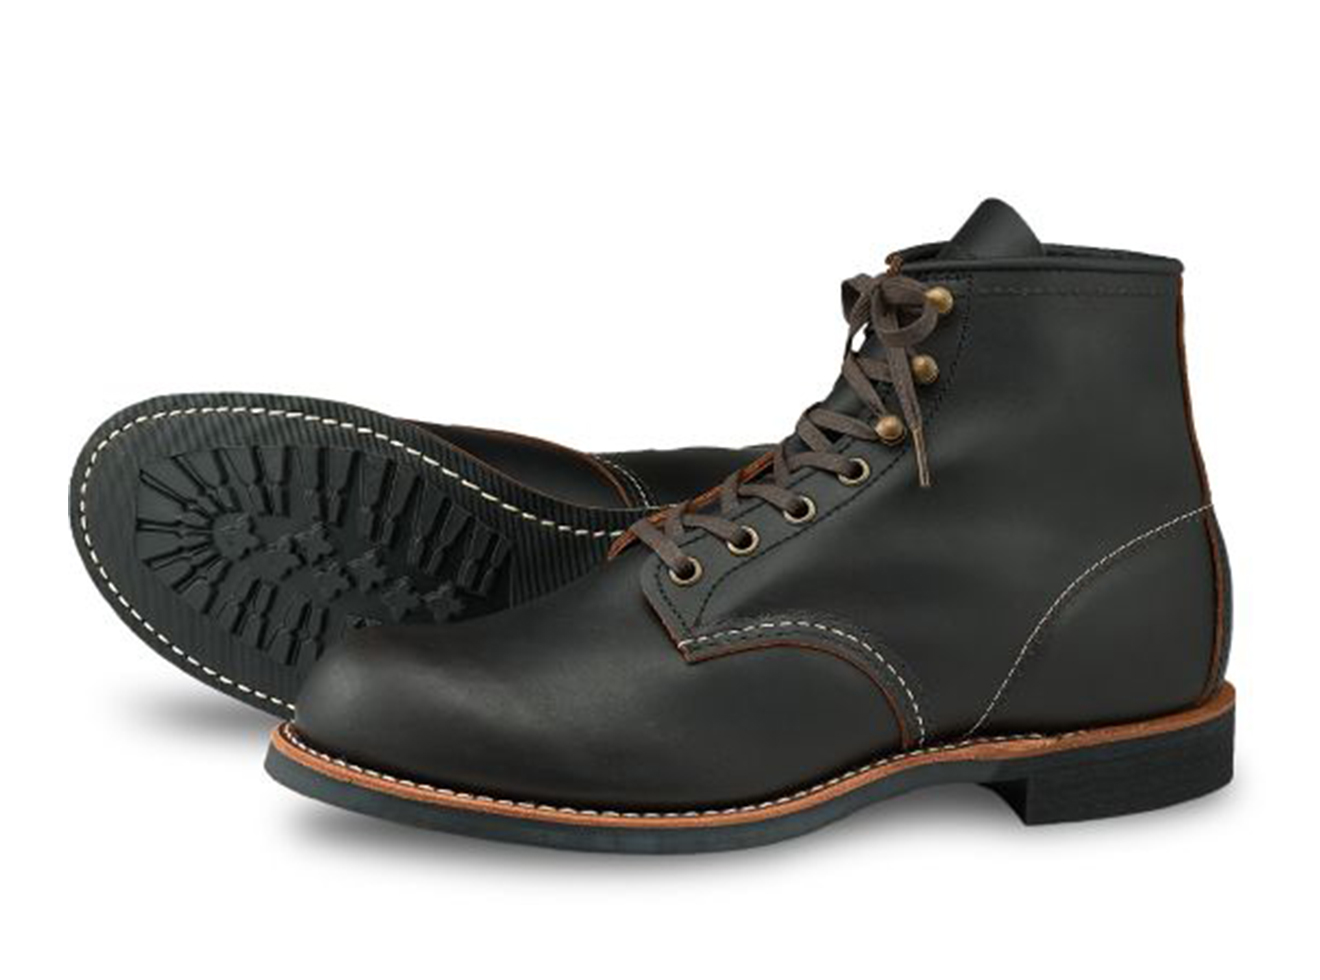 84d753ad898 The Best Leather Boots for Men to Buy This Fall 2018